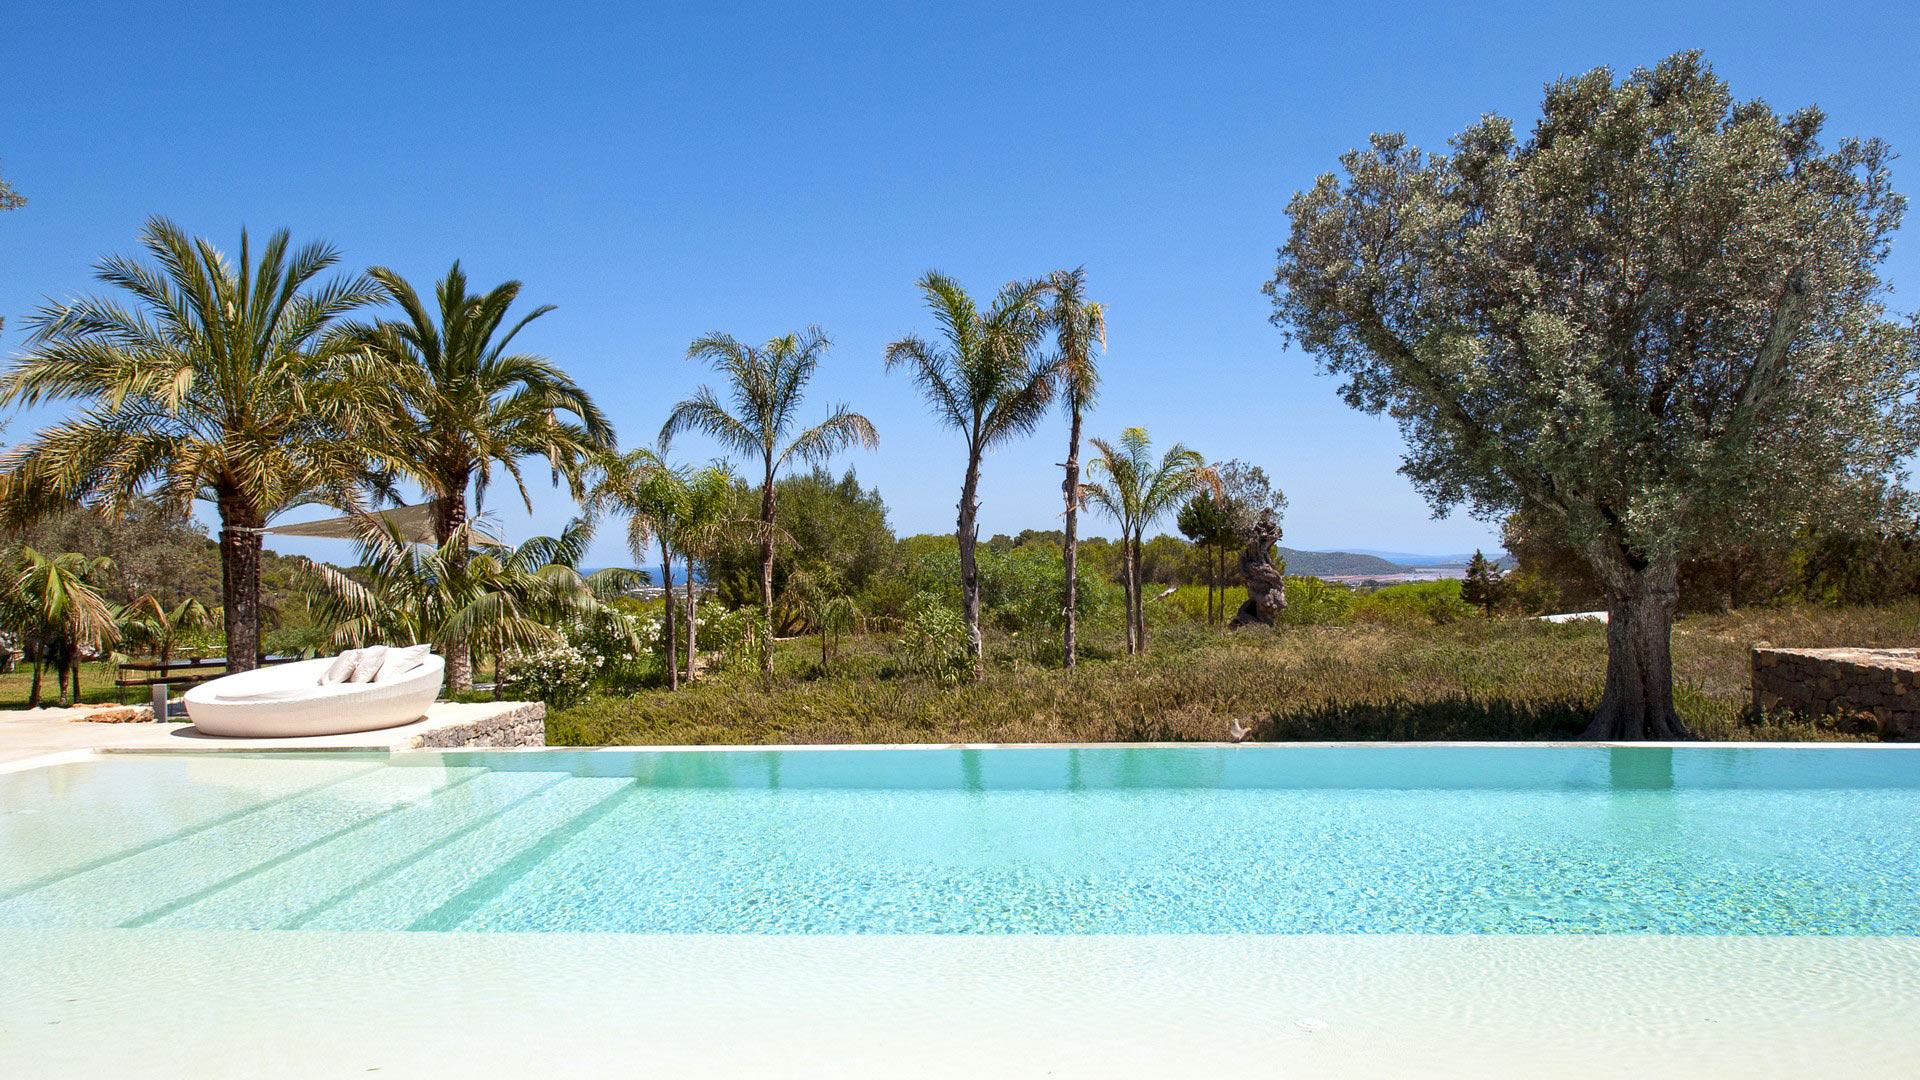 Villa Villa 866, Rental in Ibiza